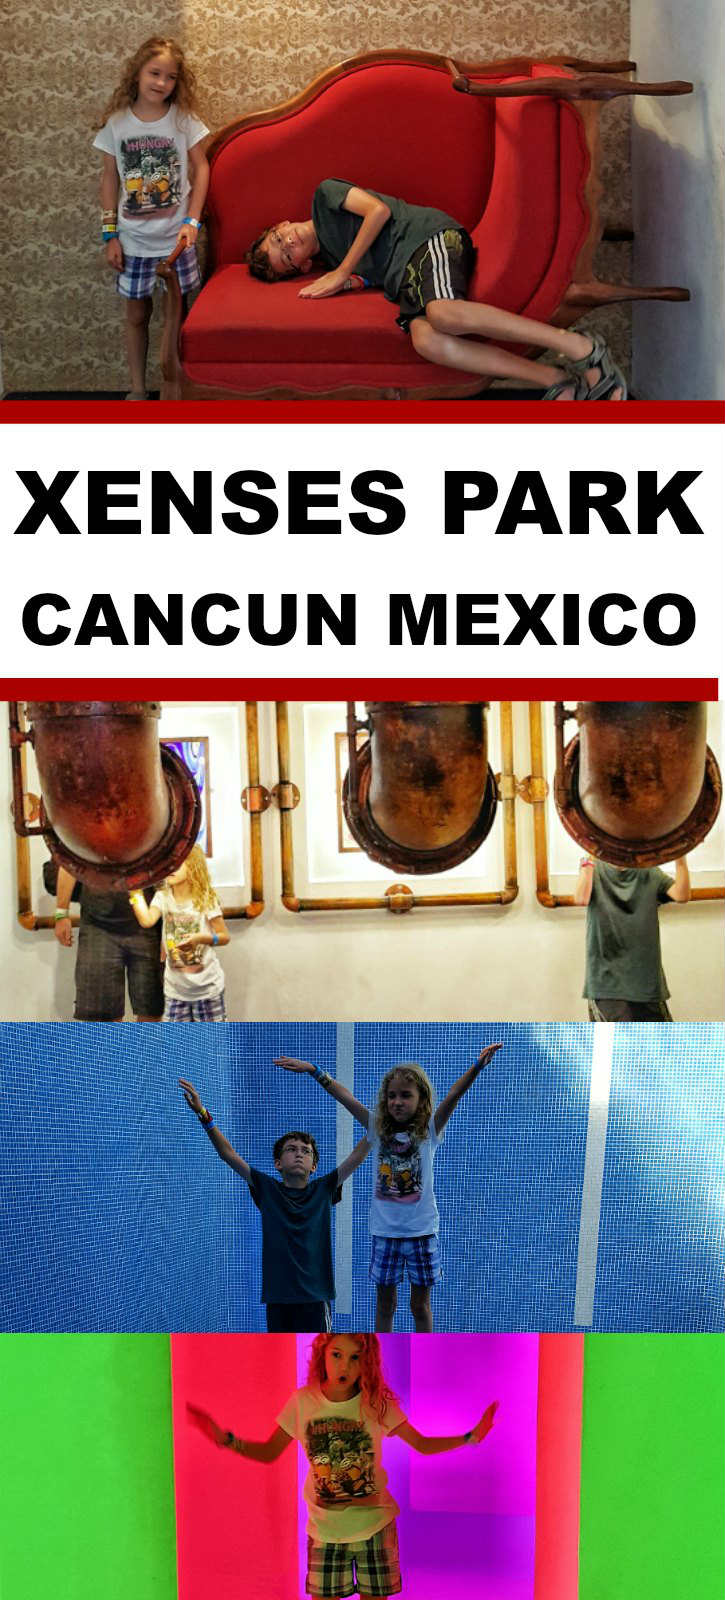 Xenses Park Cancun Mexico